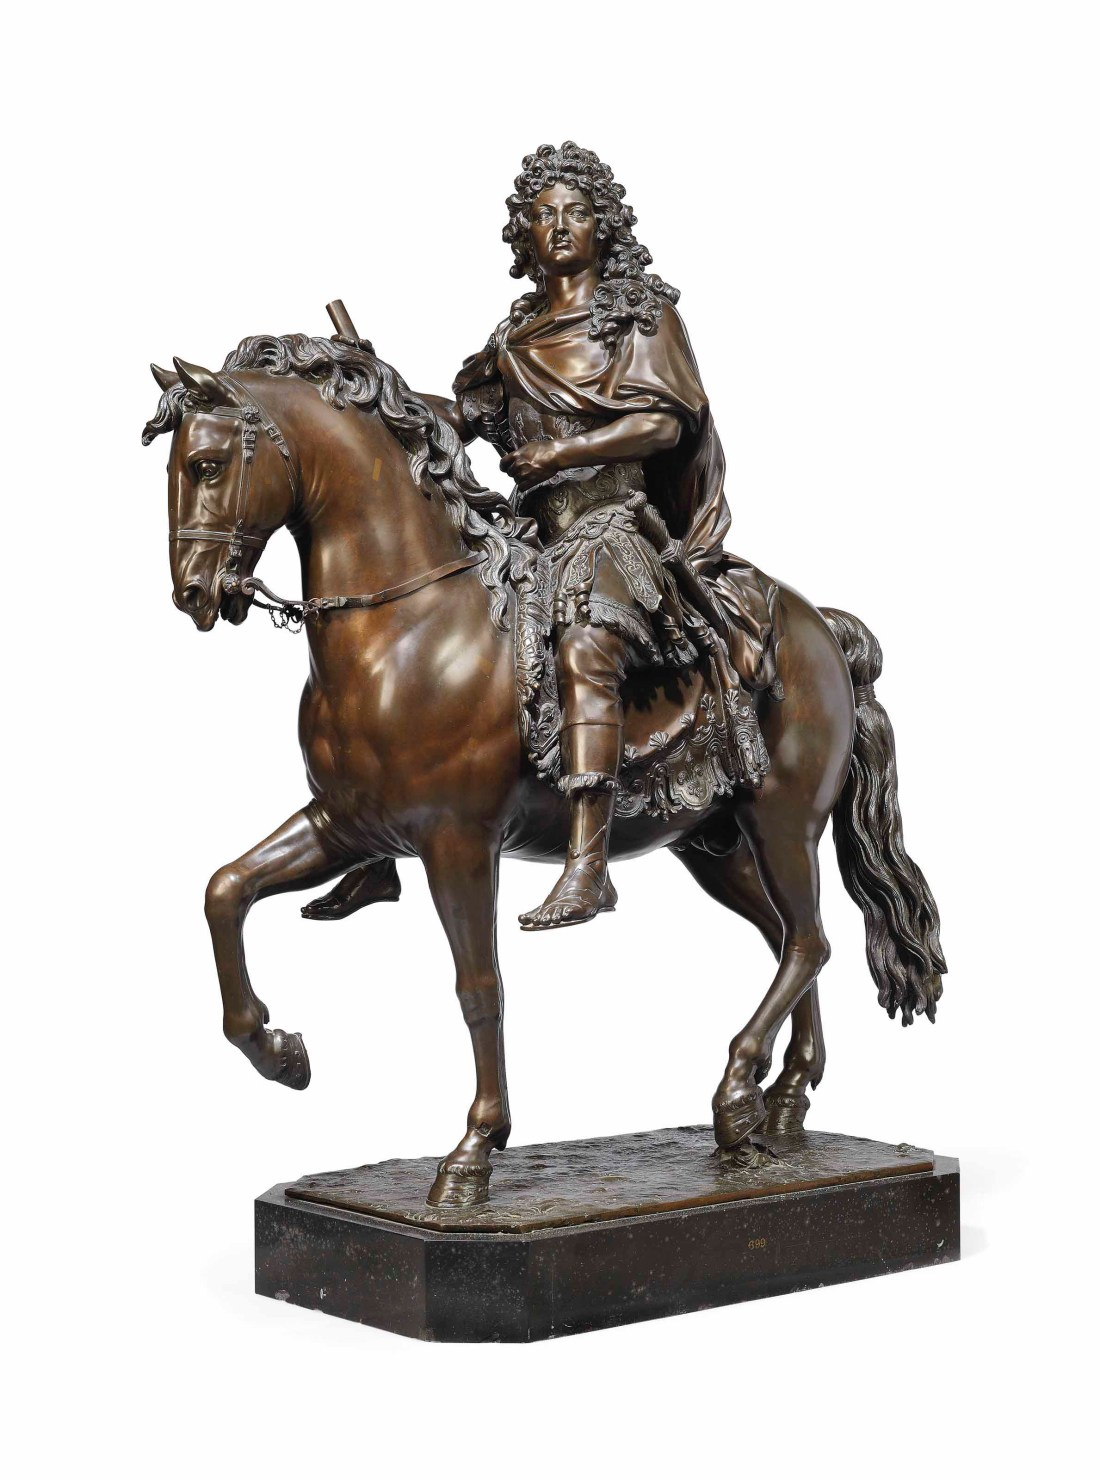 2018_CKS_15417_0130_000(a_bronze_group_of_louis_xiv_on_horseback_francois_girardon_circa_1690-)